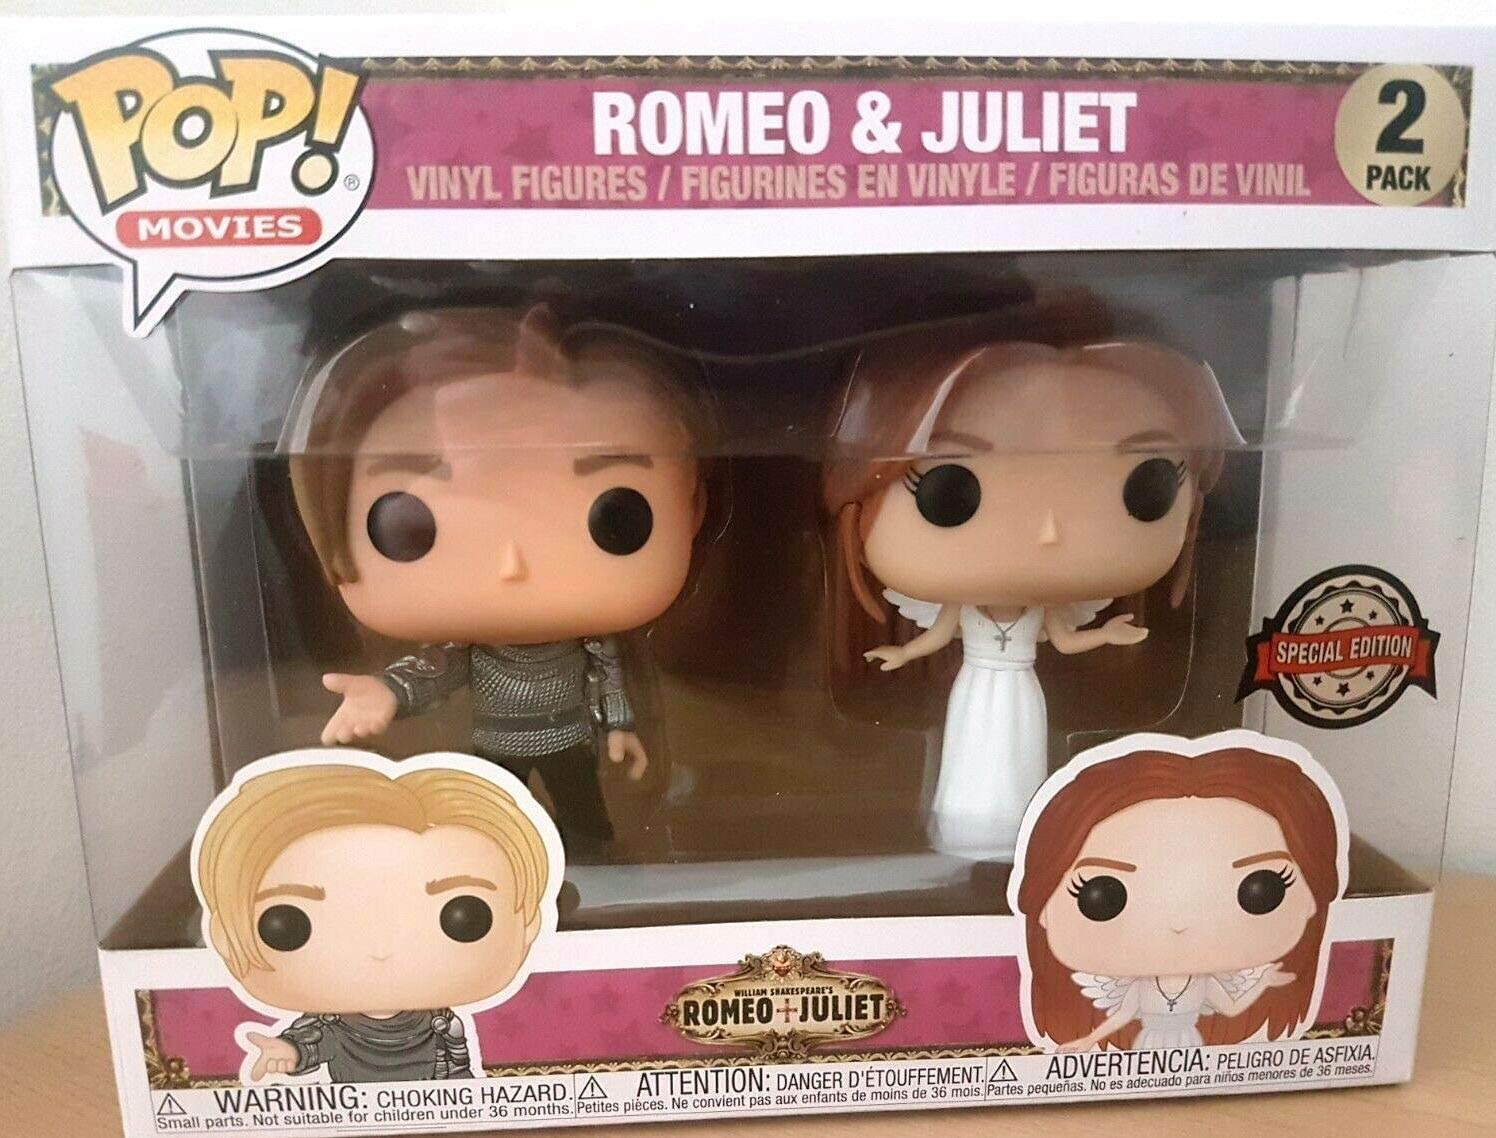 Funko - Figurine Romeo & Juliet - 2-Pack Romeo & Juliet Exclu Pop 10cm - 0889698373098: Amazon.es: Juguetes y juegos